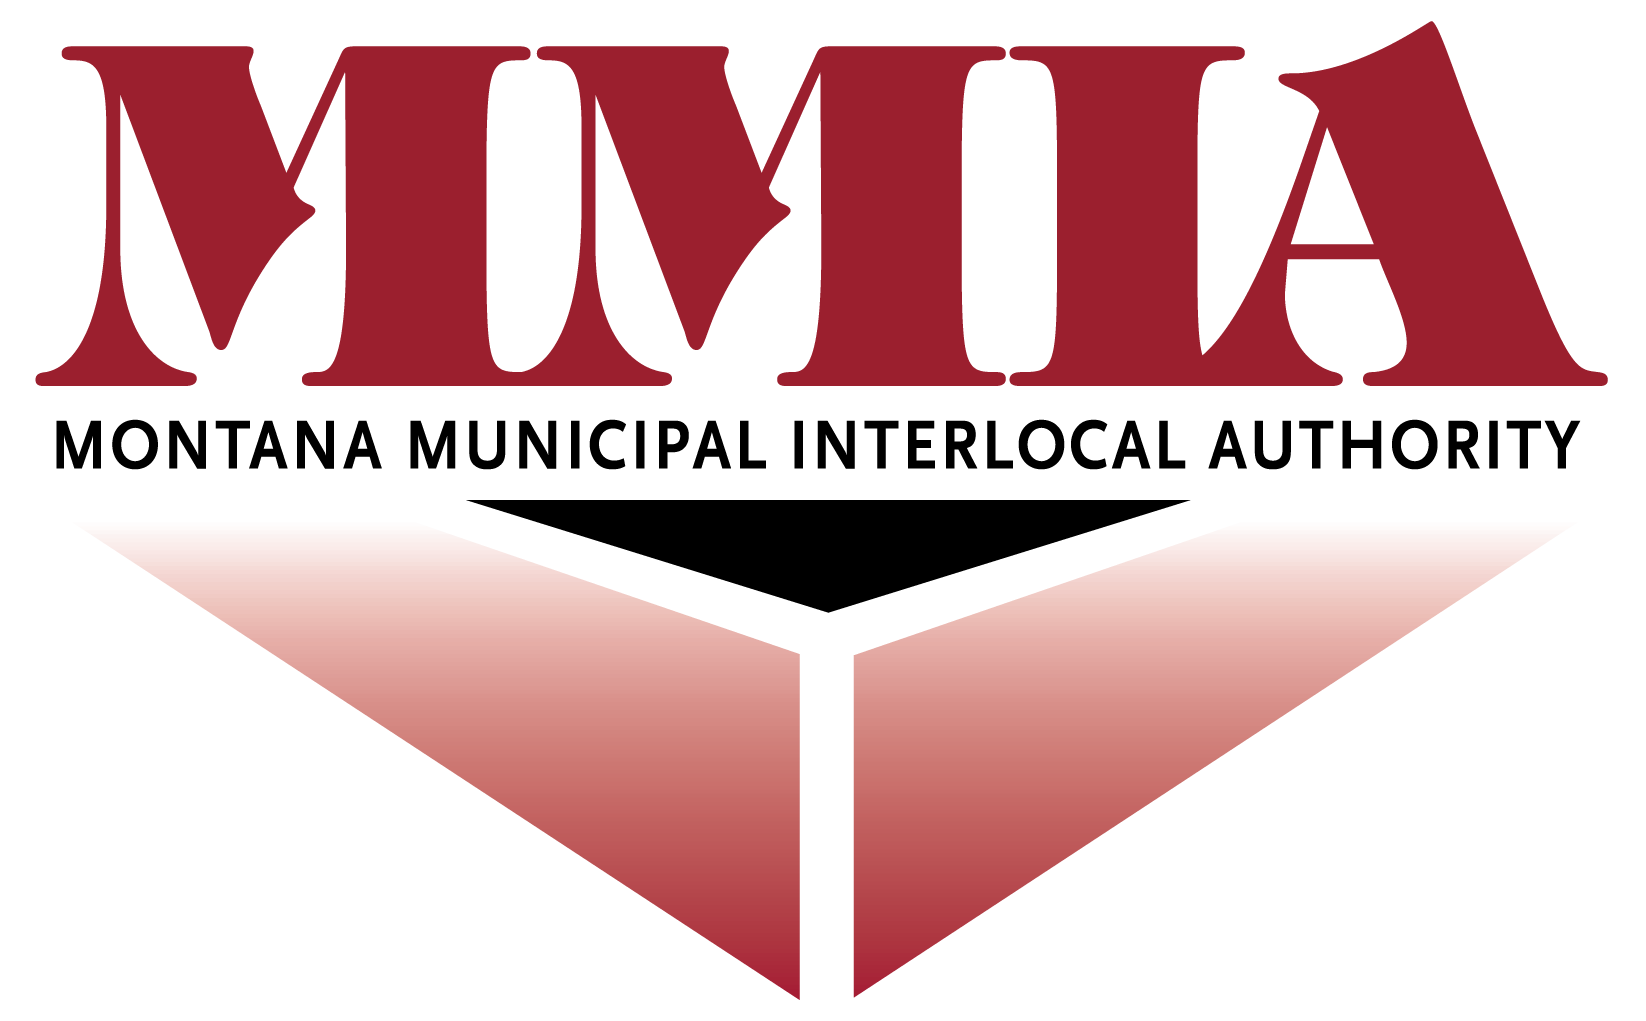 Montana Municipal Interlocal Authority logo